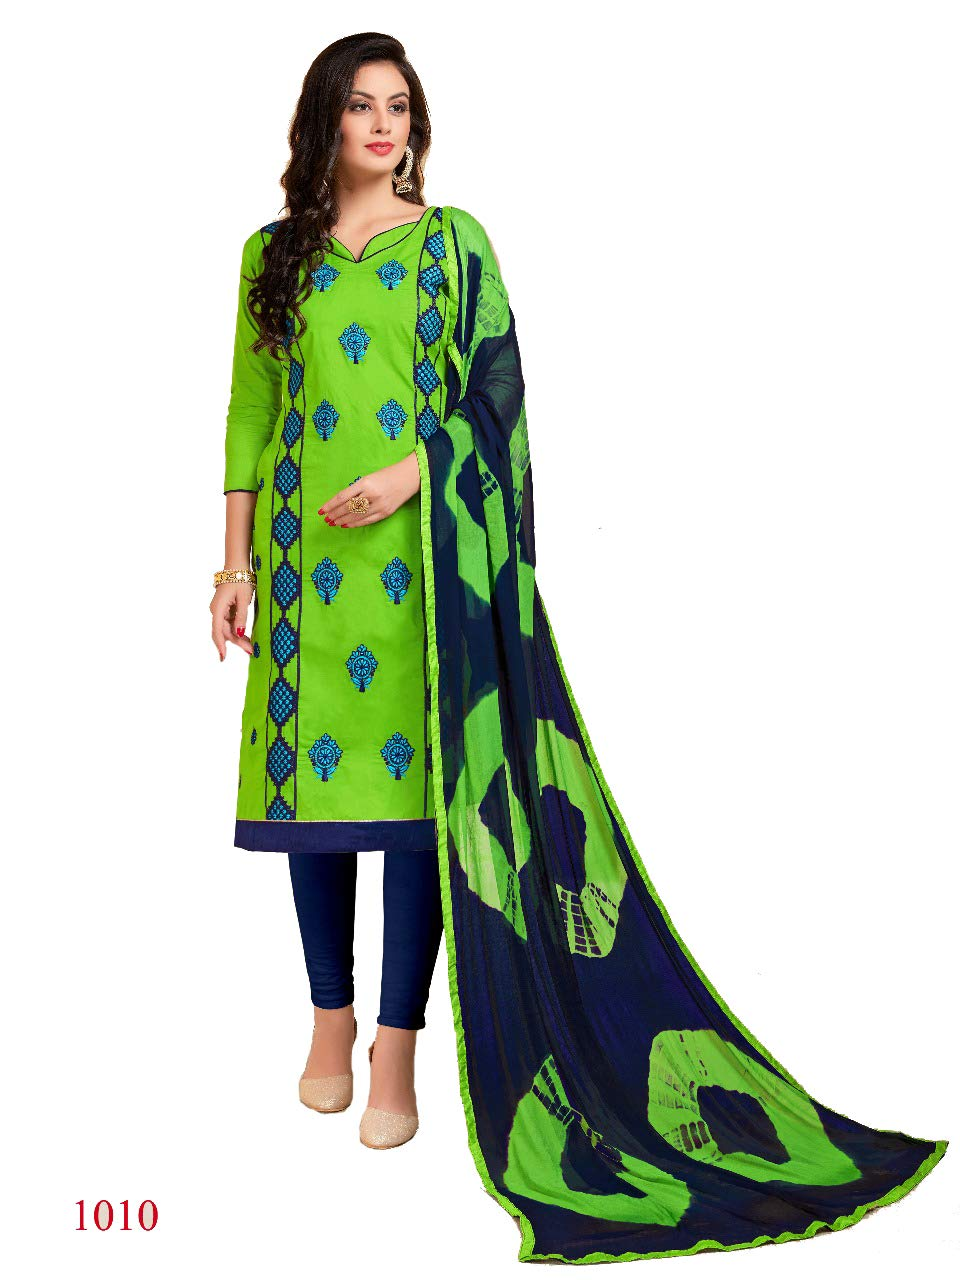 b76dc135b9 Shree Ganesh Retail Womens Lone Cotton With Embroidery Churidar Material |  Salwar Suit | Salwar Kameez Unstitched Dress Material (GREEN & BLUE 1010)